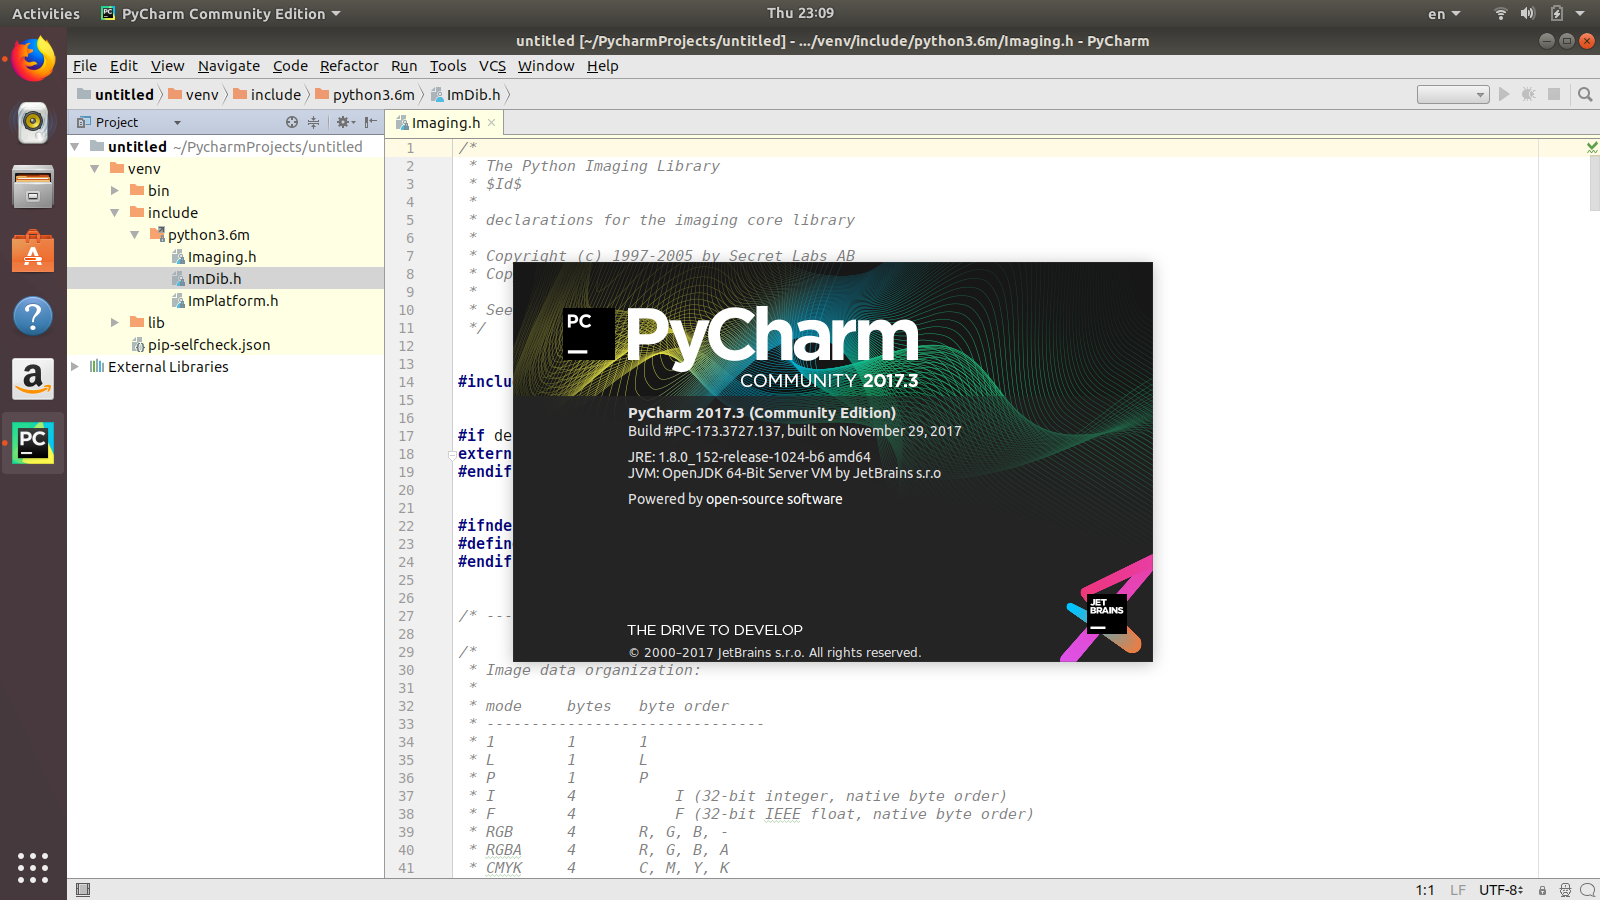 How to install program on Ubuntu: How to install PyCharm